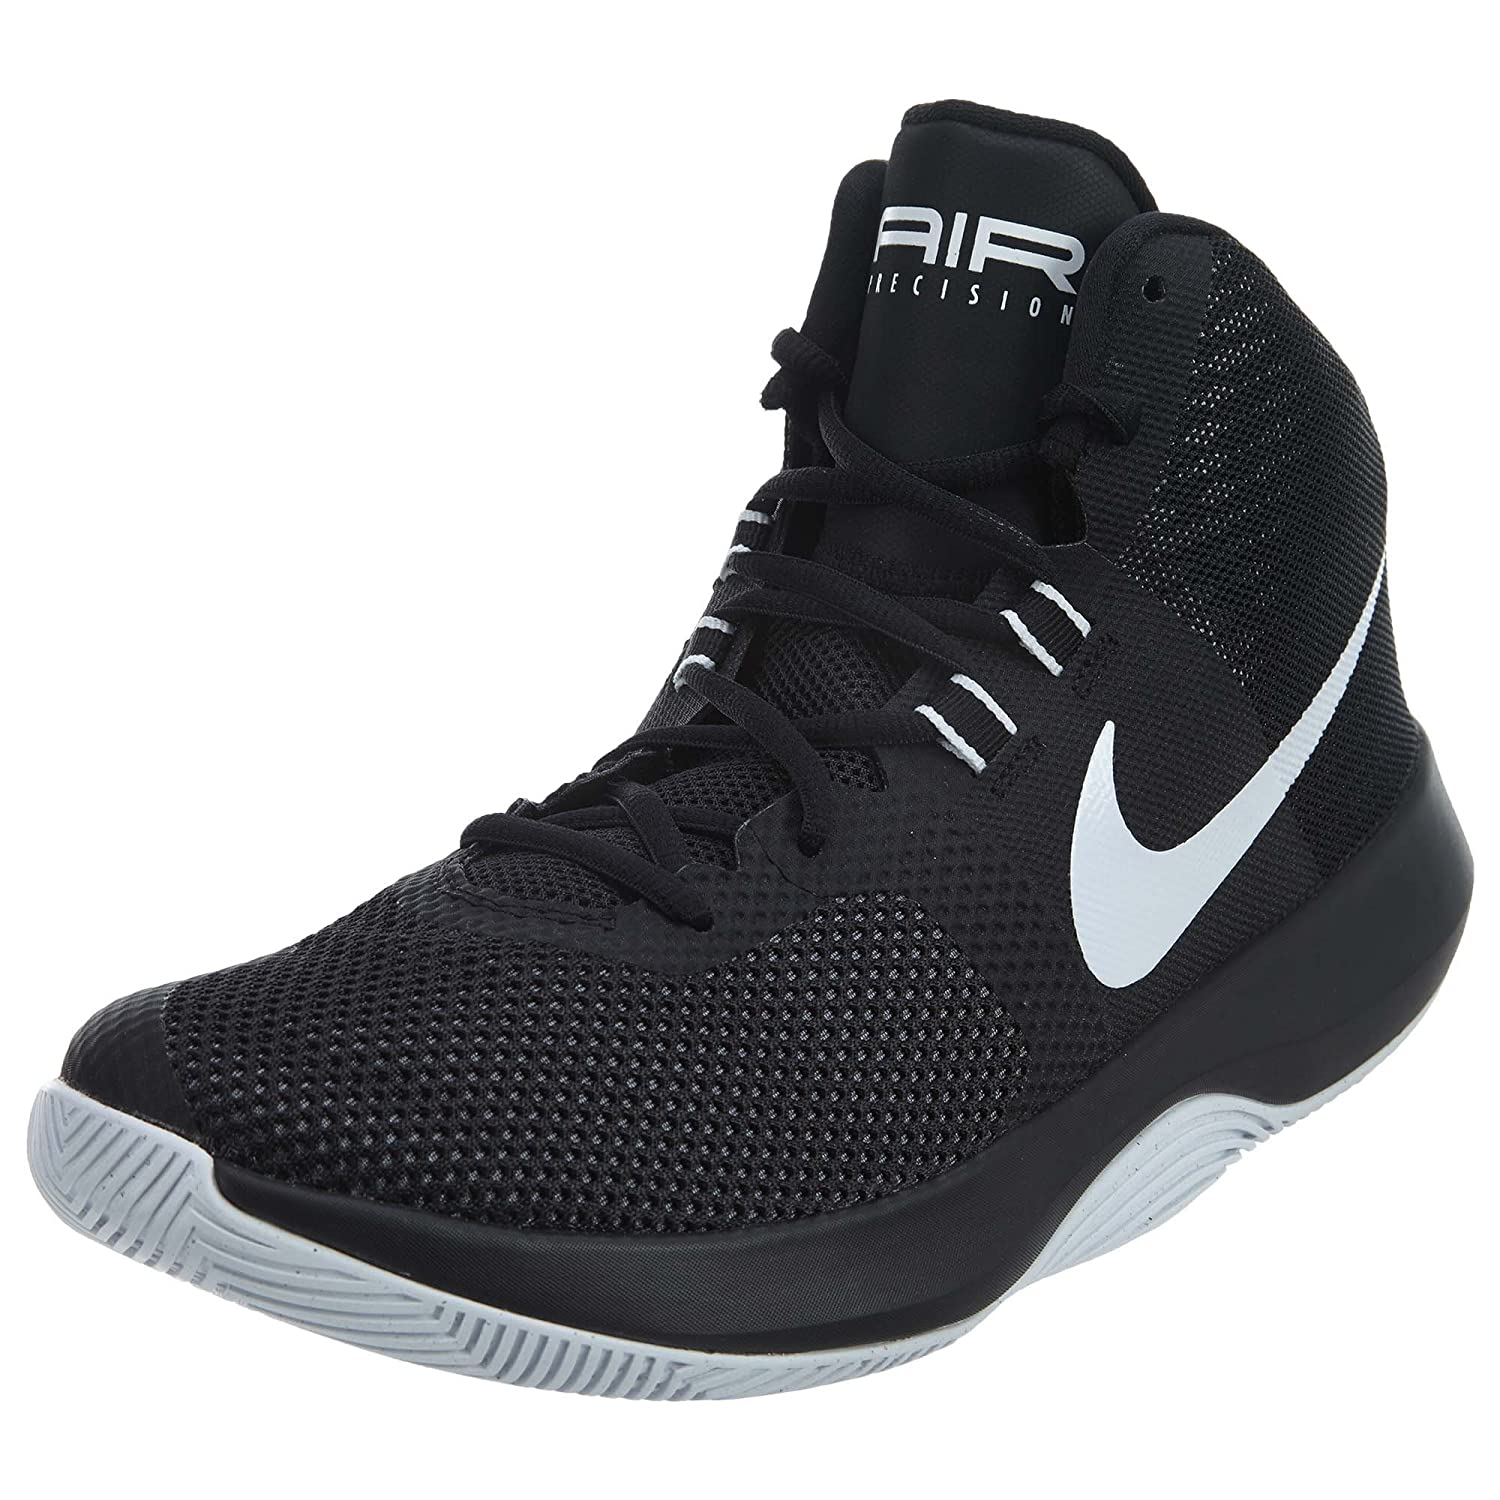 Nike Mens Air Precision BlackWhiteCool Grey Basketball